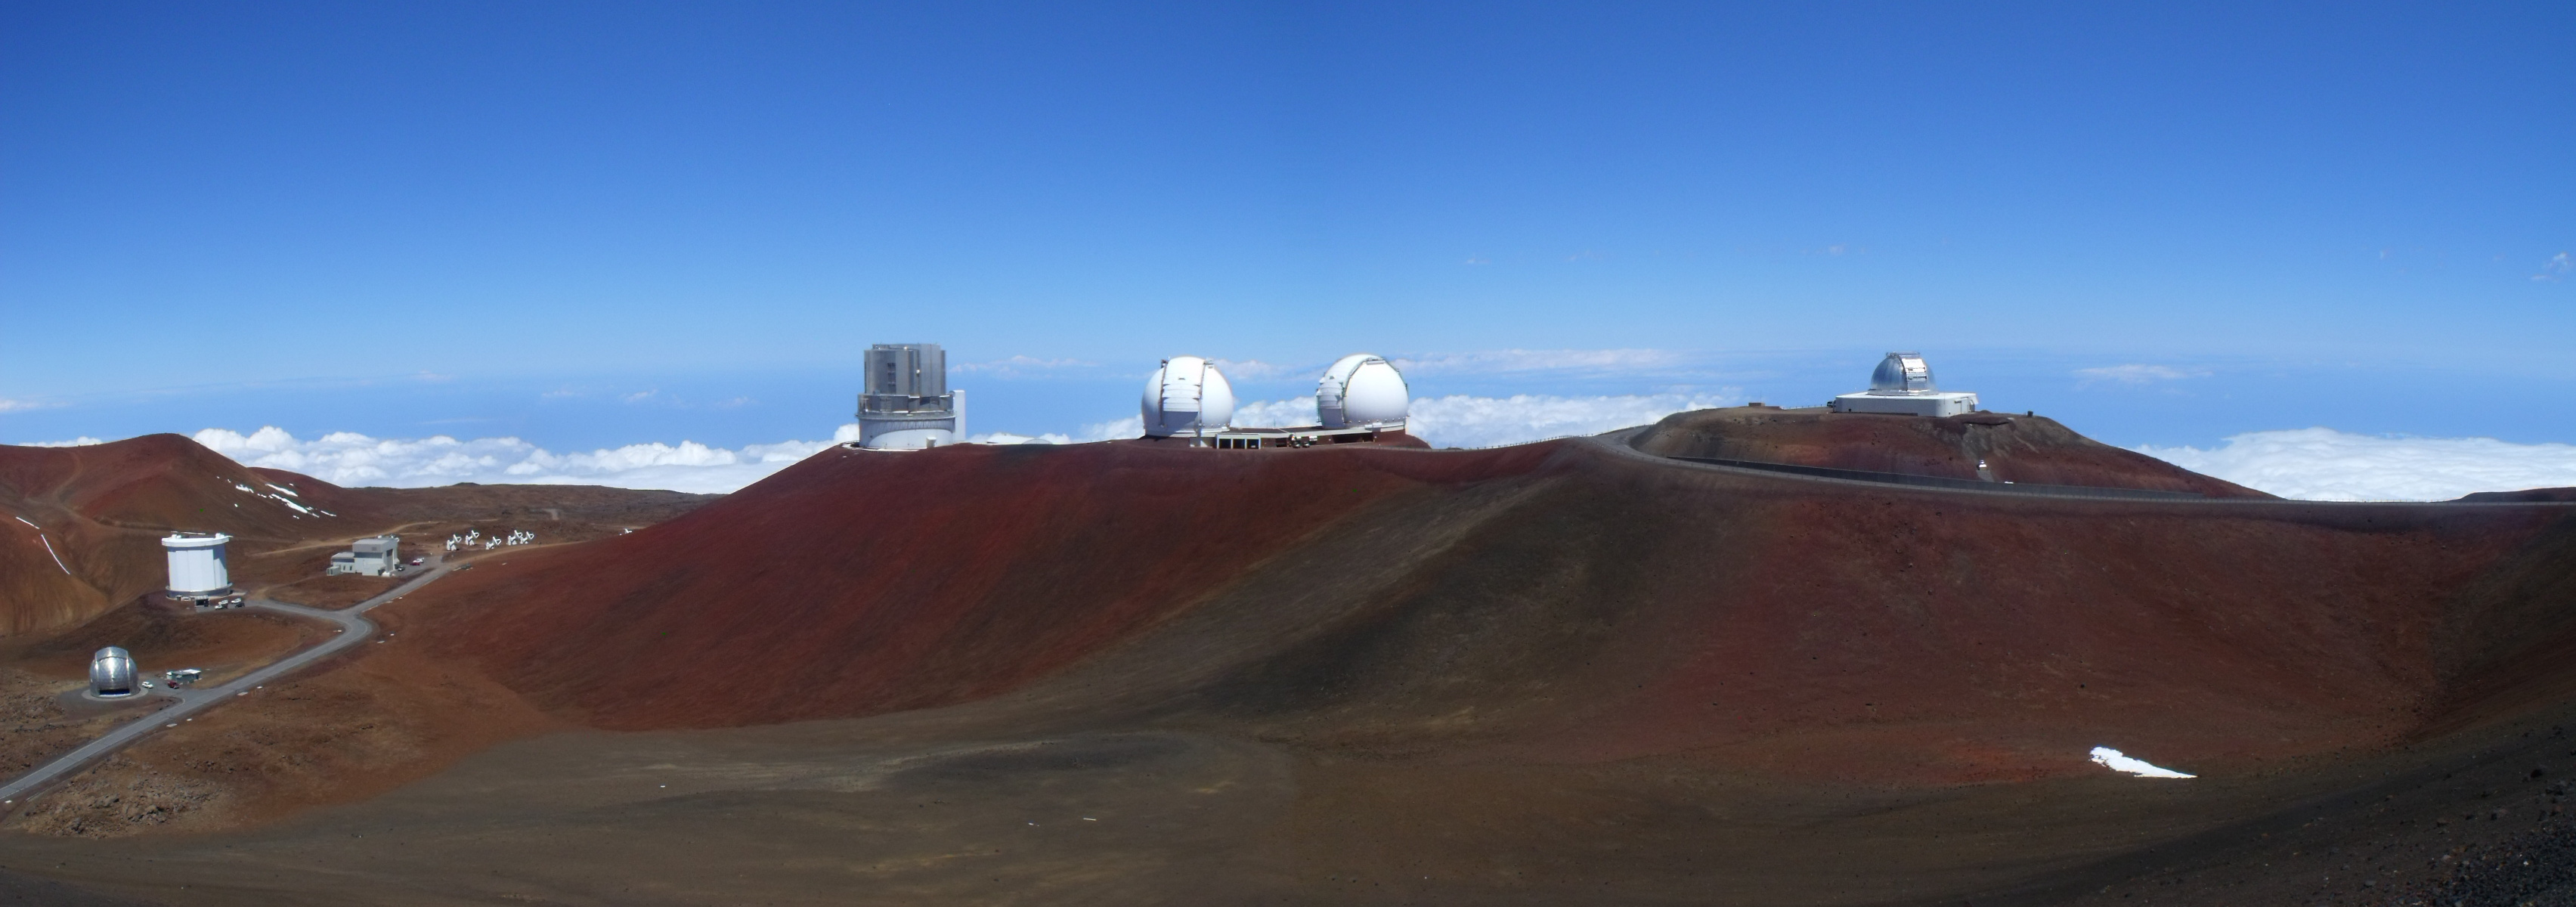 http://c.gp.tohoku.ac.jp/~promotion/blog/upload_images/Mauna-Kea-Observatory-West.jpg